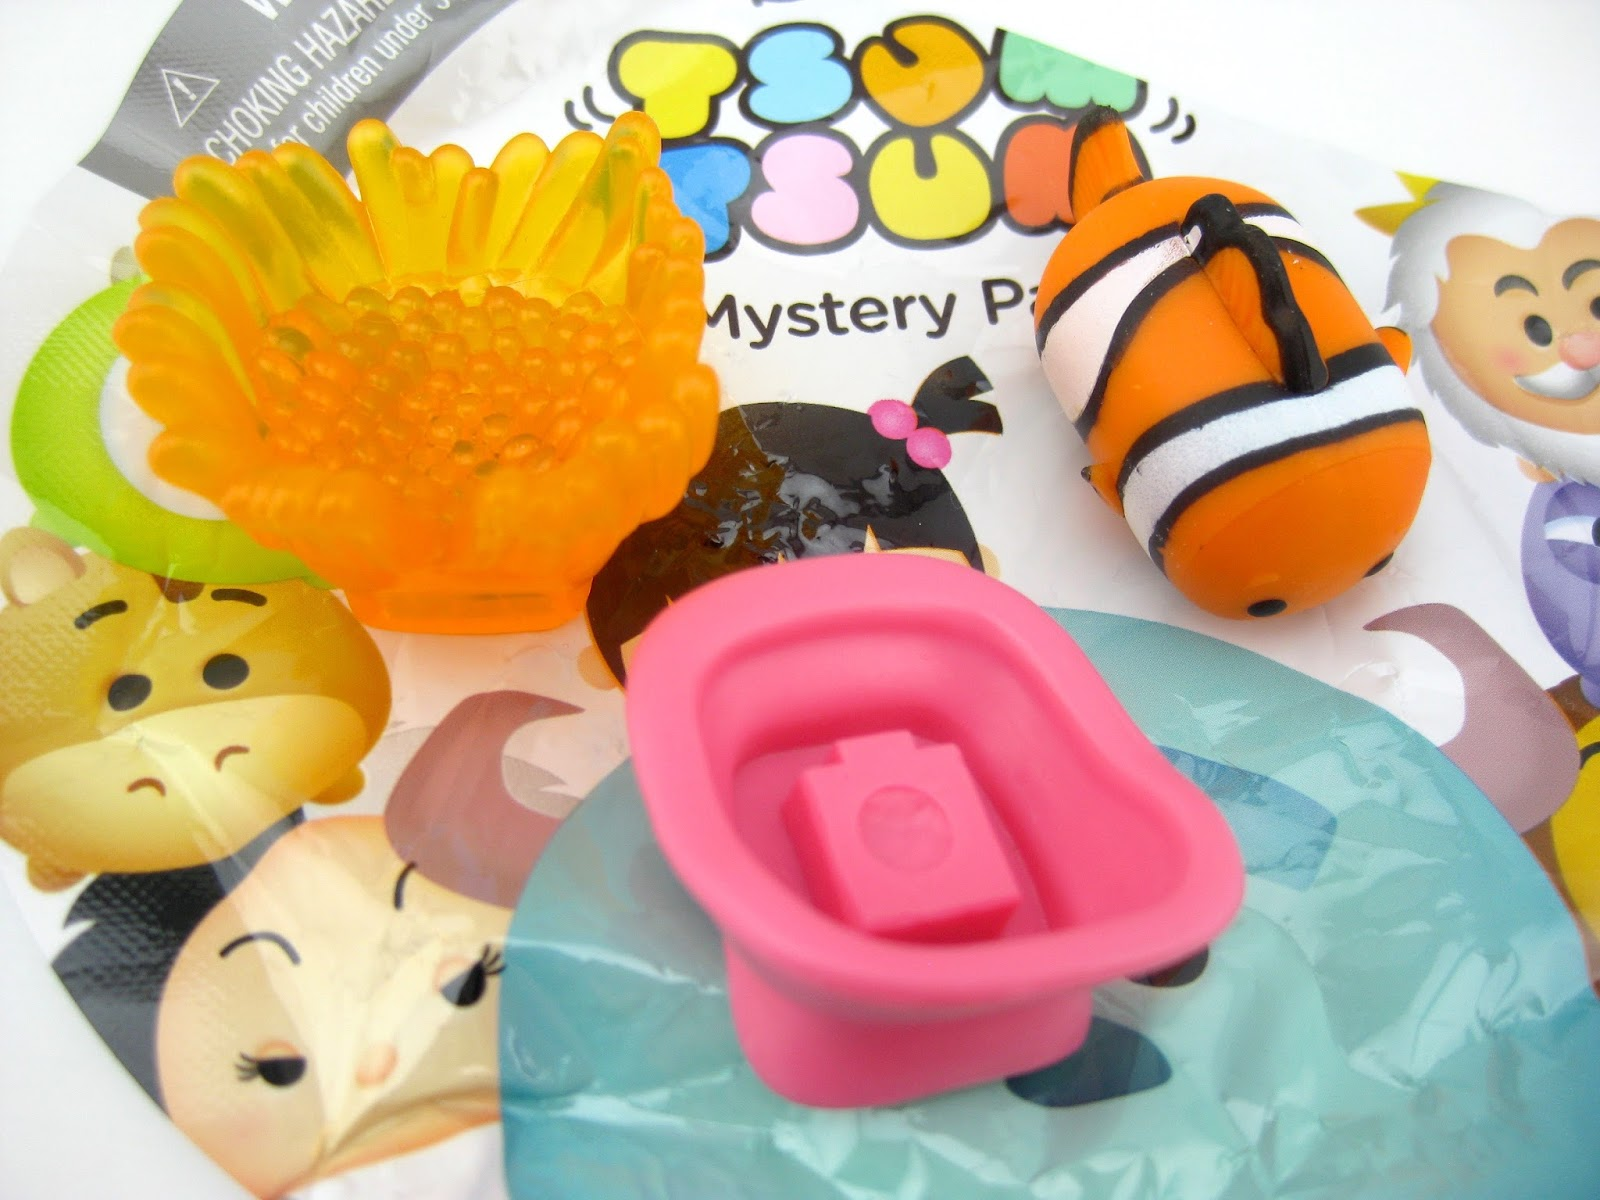 Disney Tsum Tsum Mystery Stack Packs by Jakks Pacific Series 5 nemo